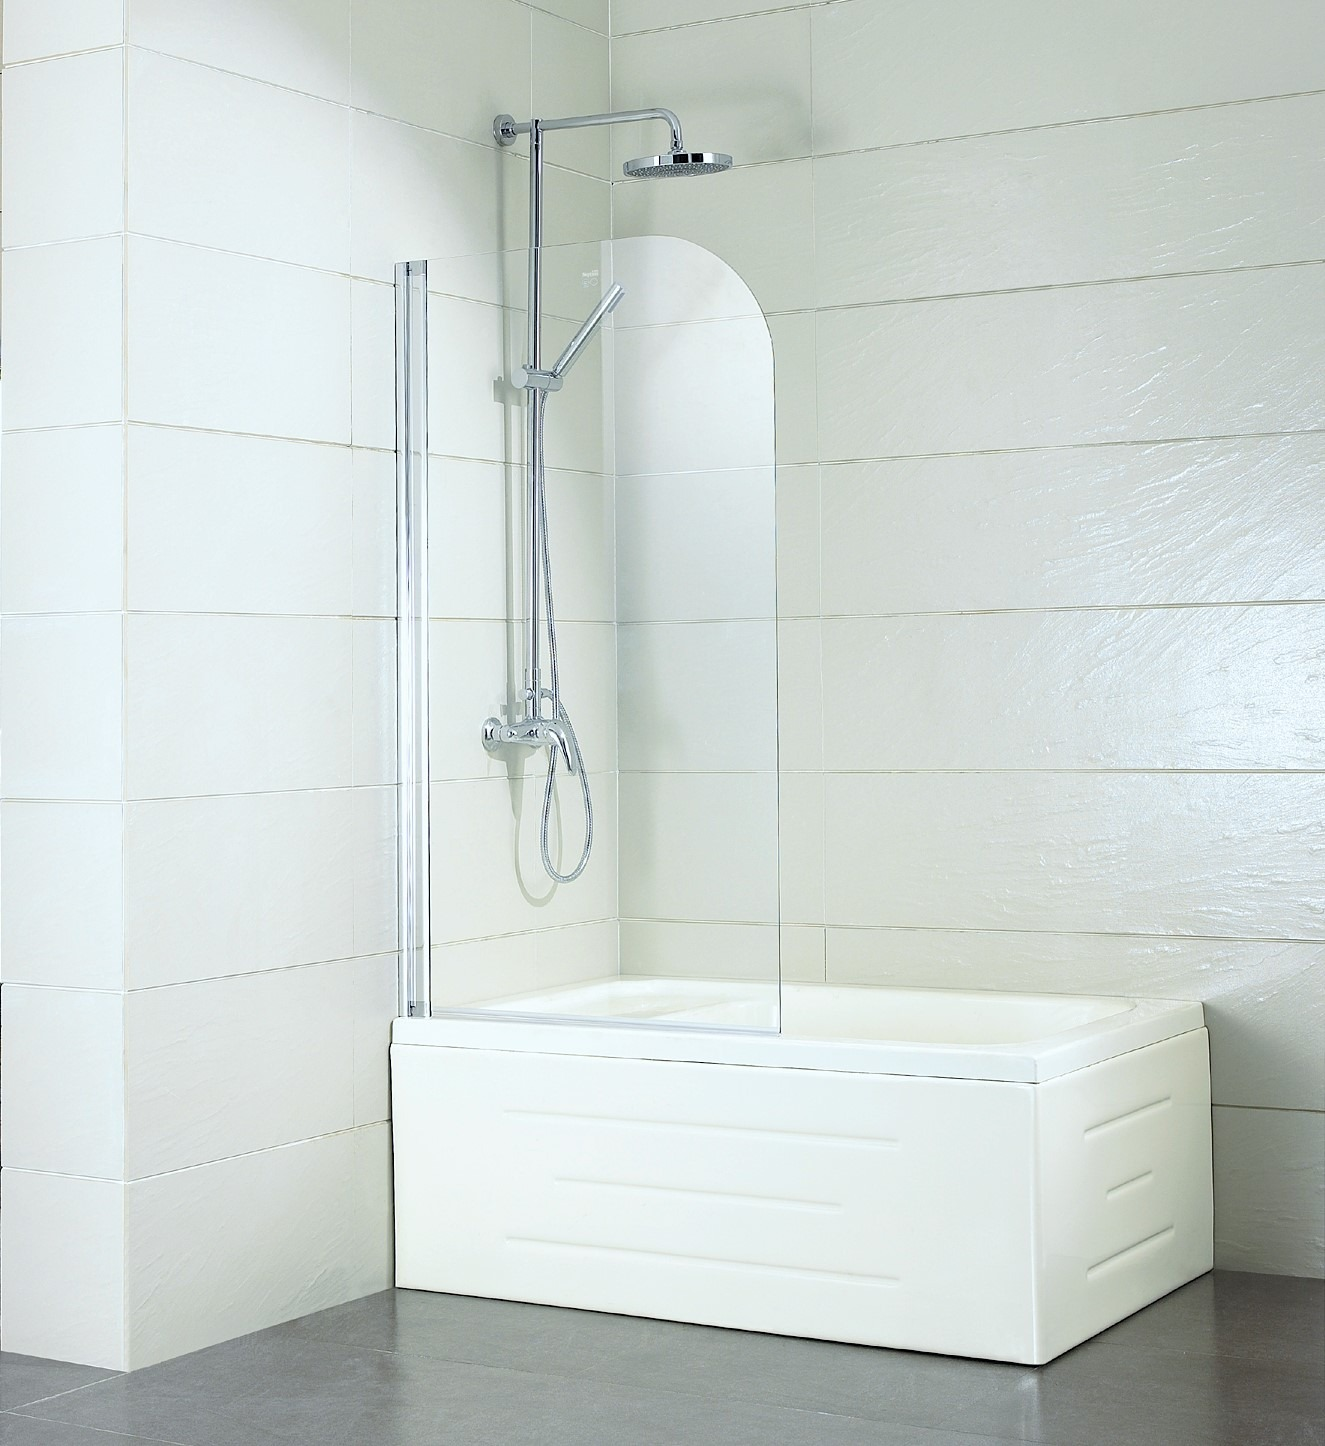 bath screens pipers pipers international shower screens bath screens pipers pipers international shower screens splashbacks wardrobes bathroom ware